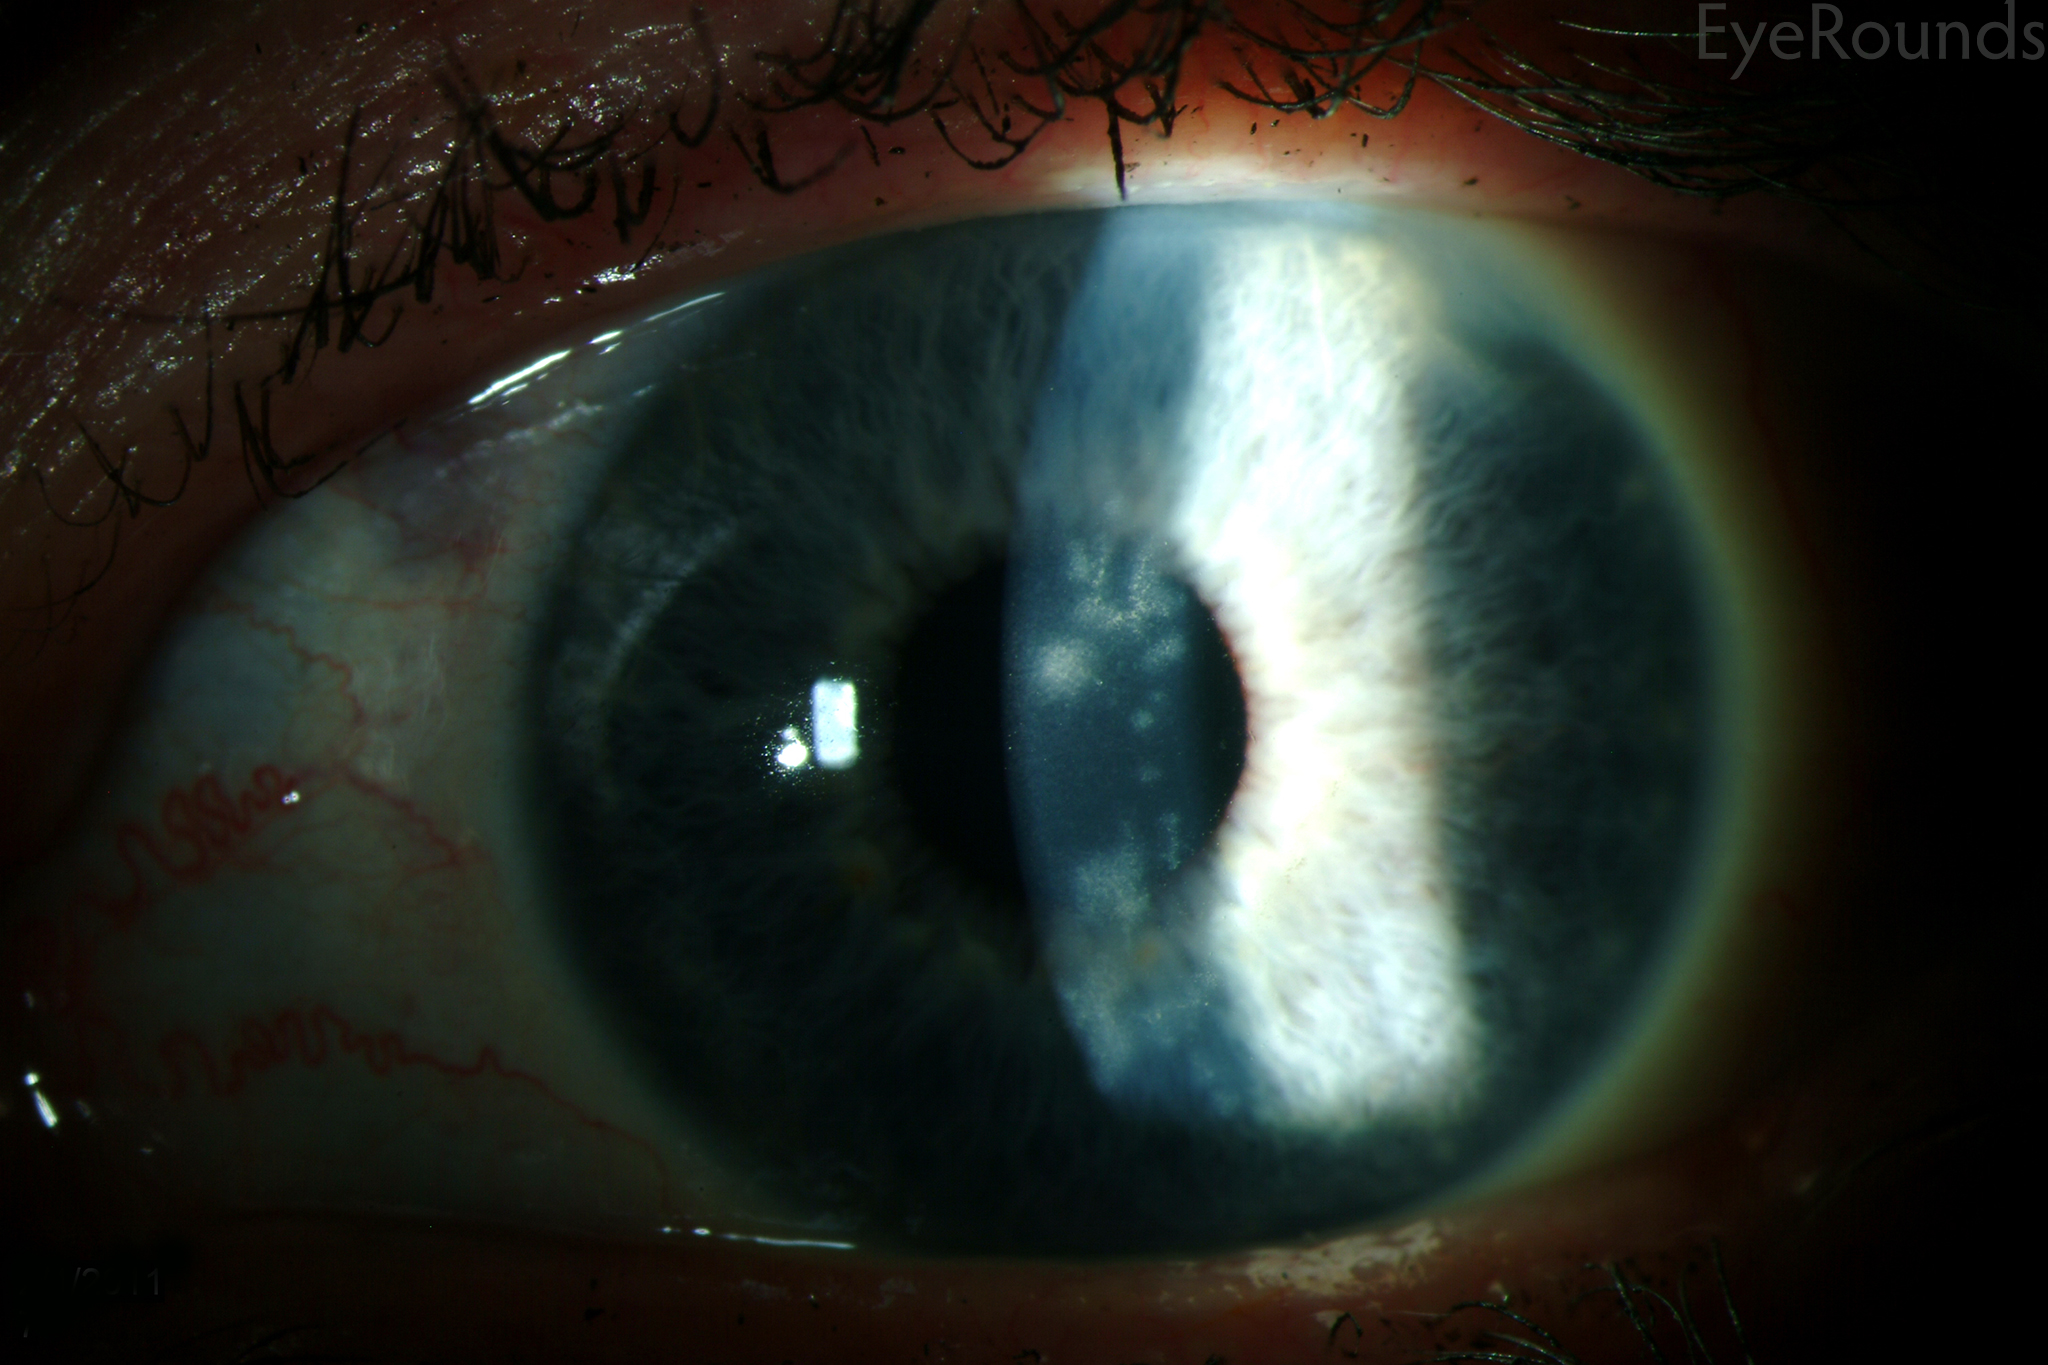 Herpetic keratitis: causes and treatment 24